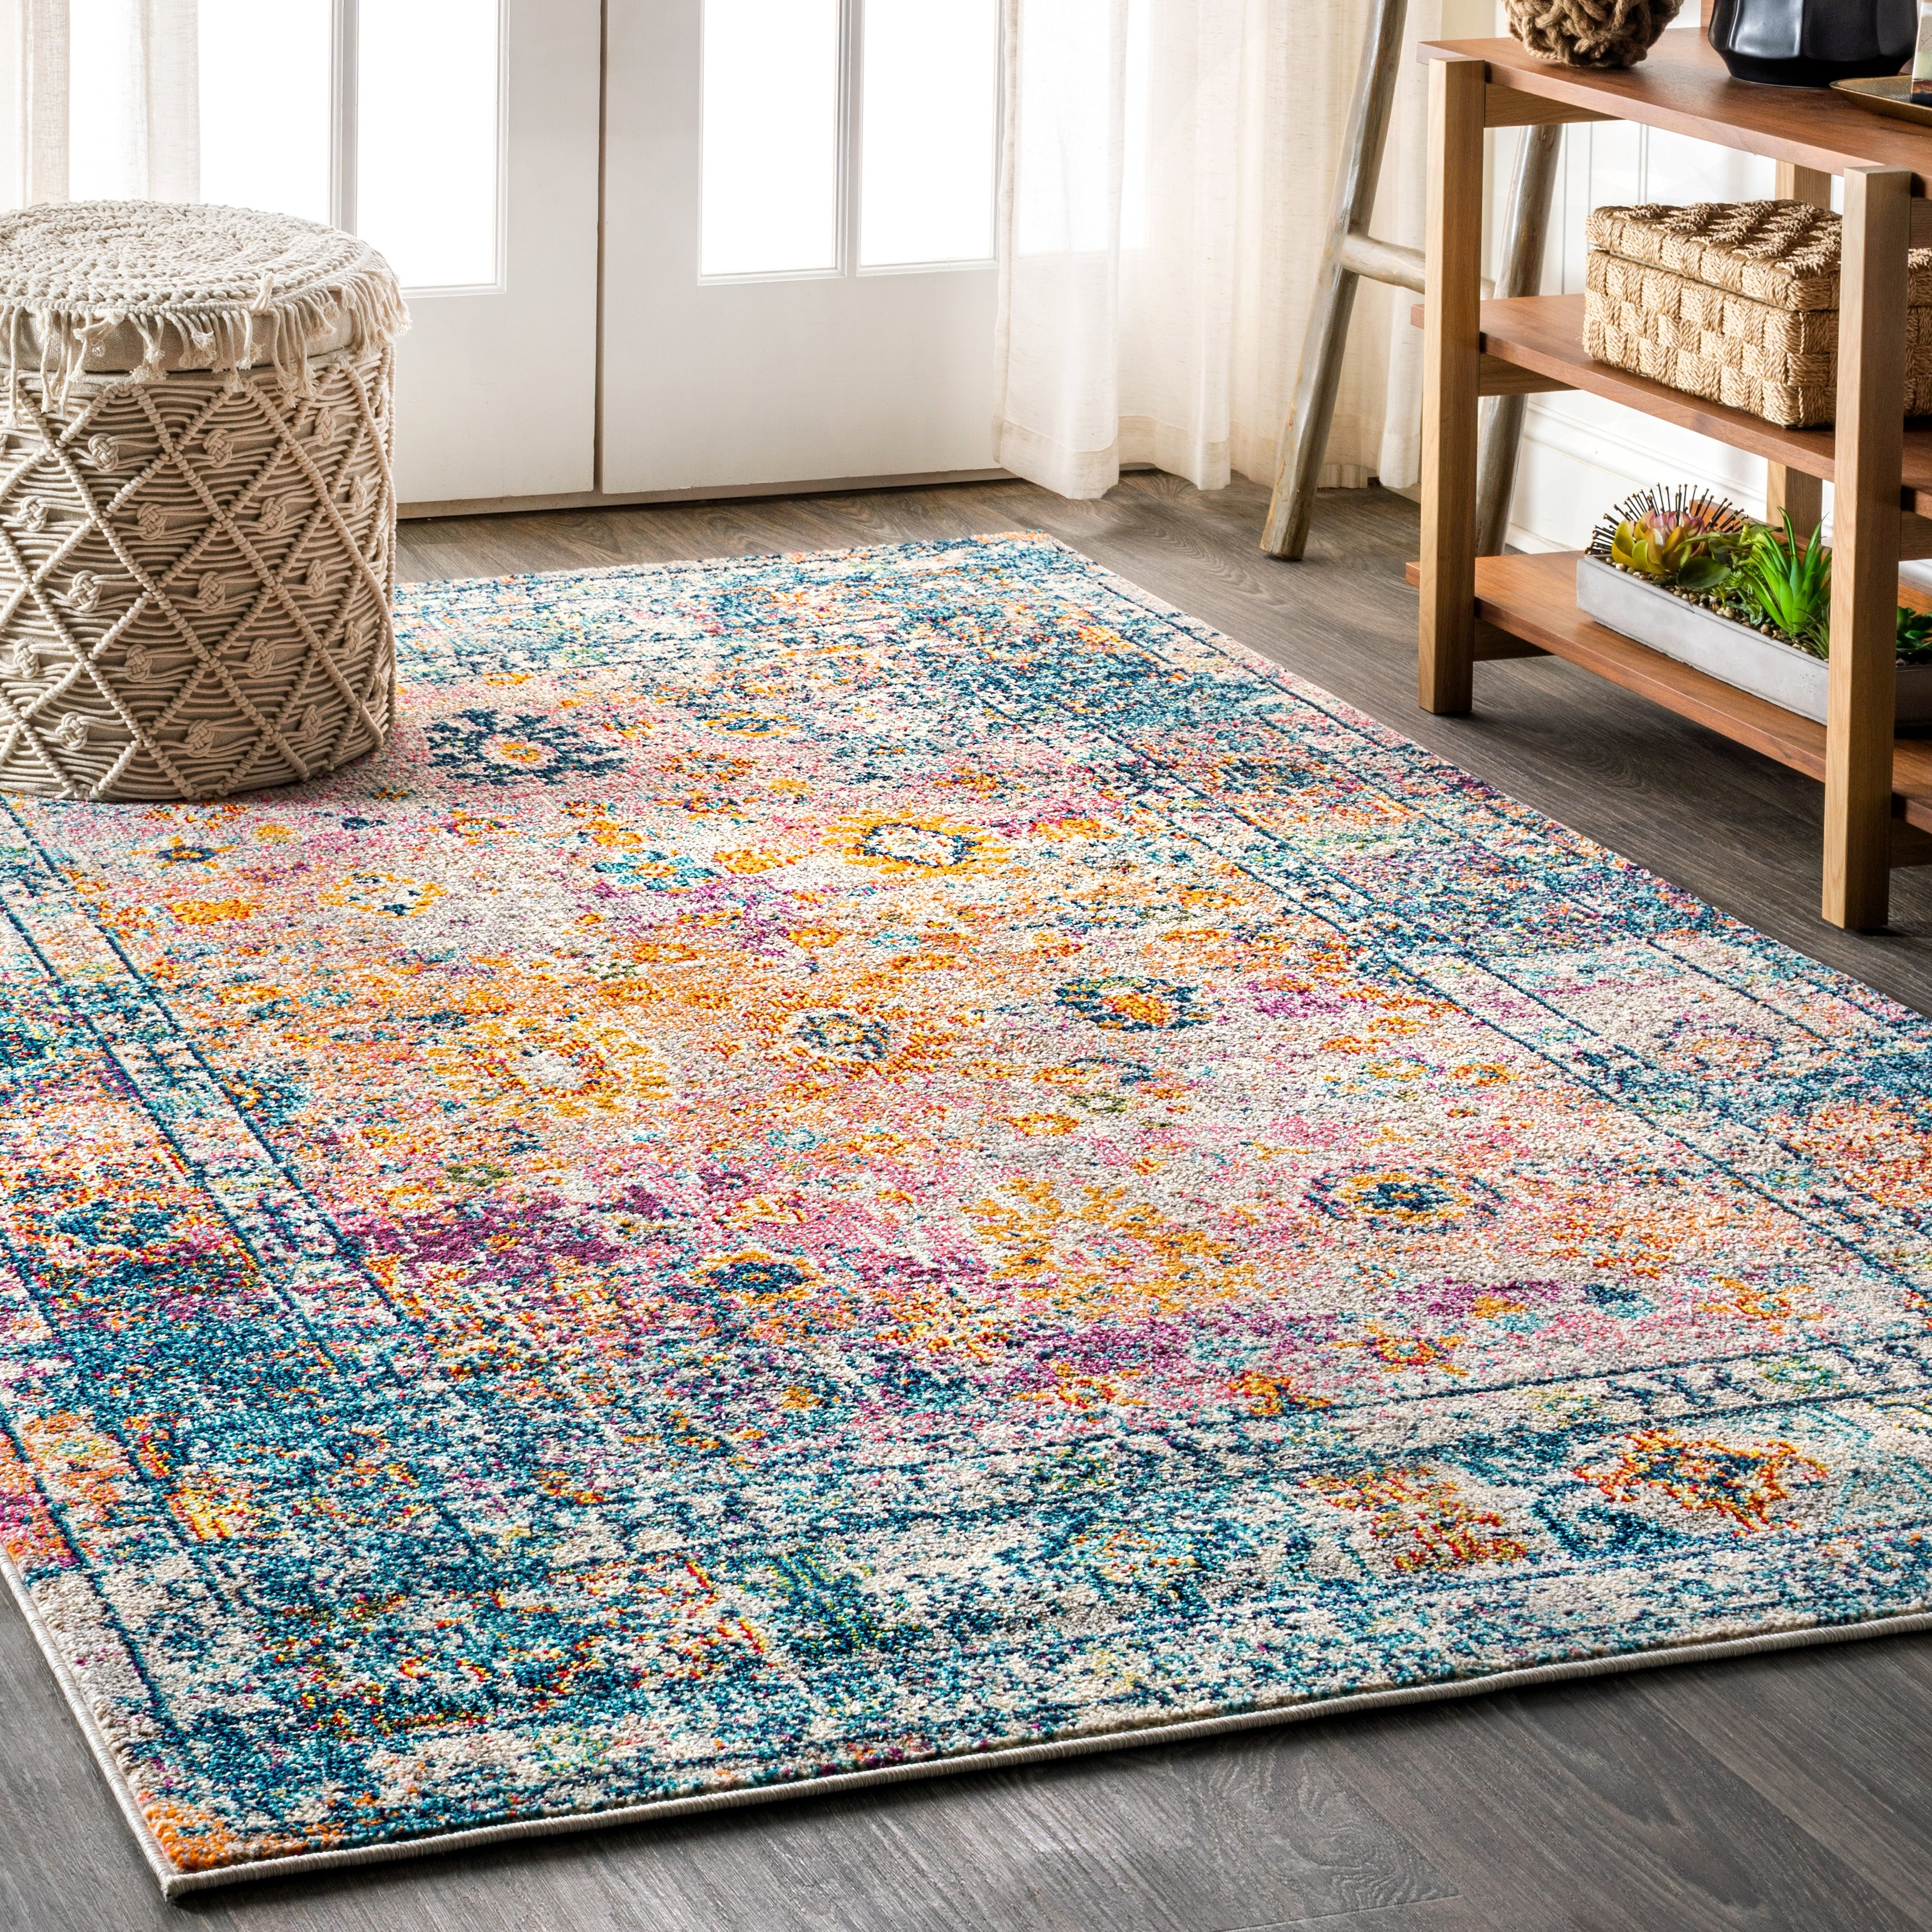 Picture of: Bohemian Flair Boho Vintage Faded Area Rug Overstock 27416184 Navy Cream 8 X 10